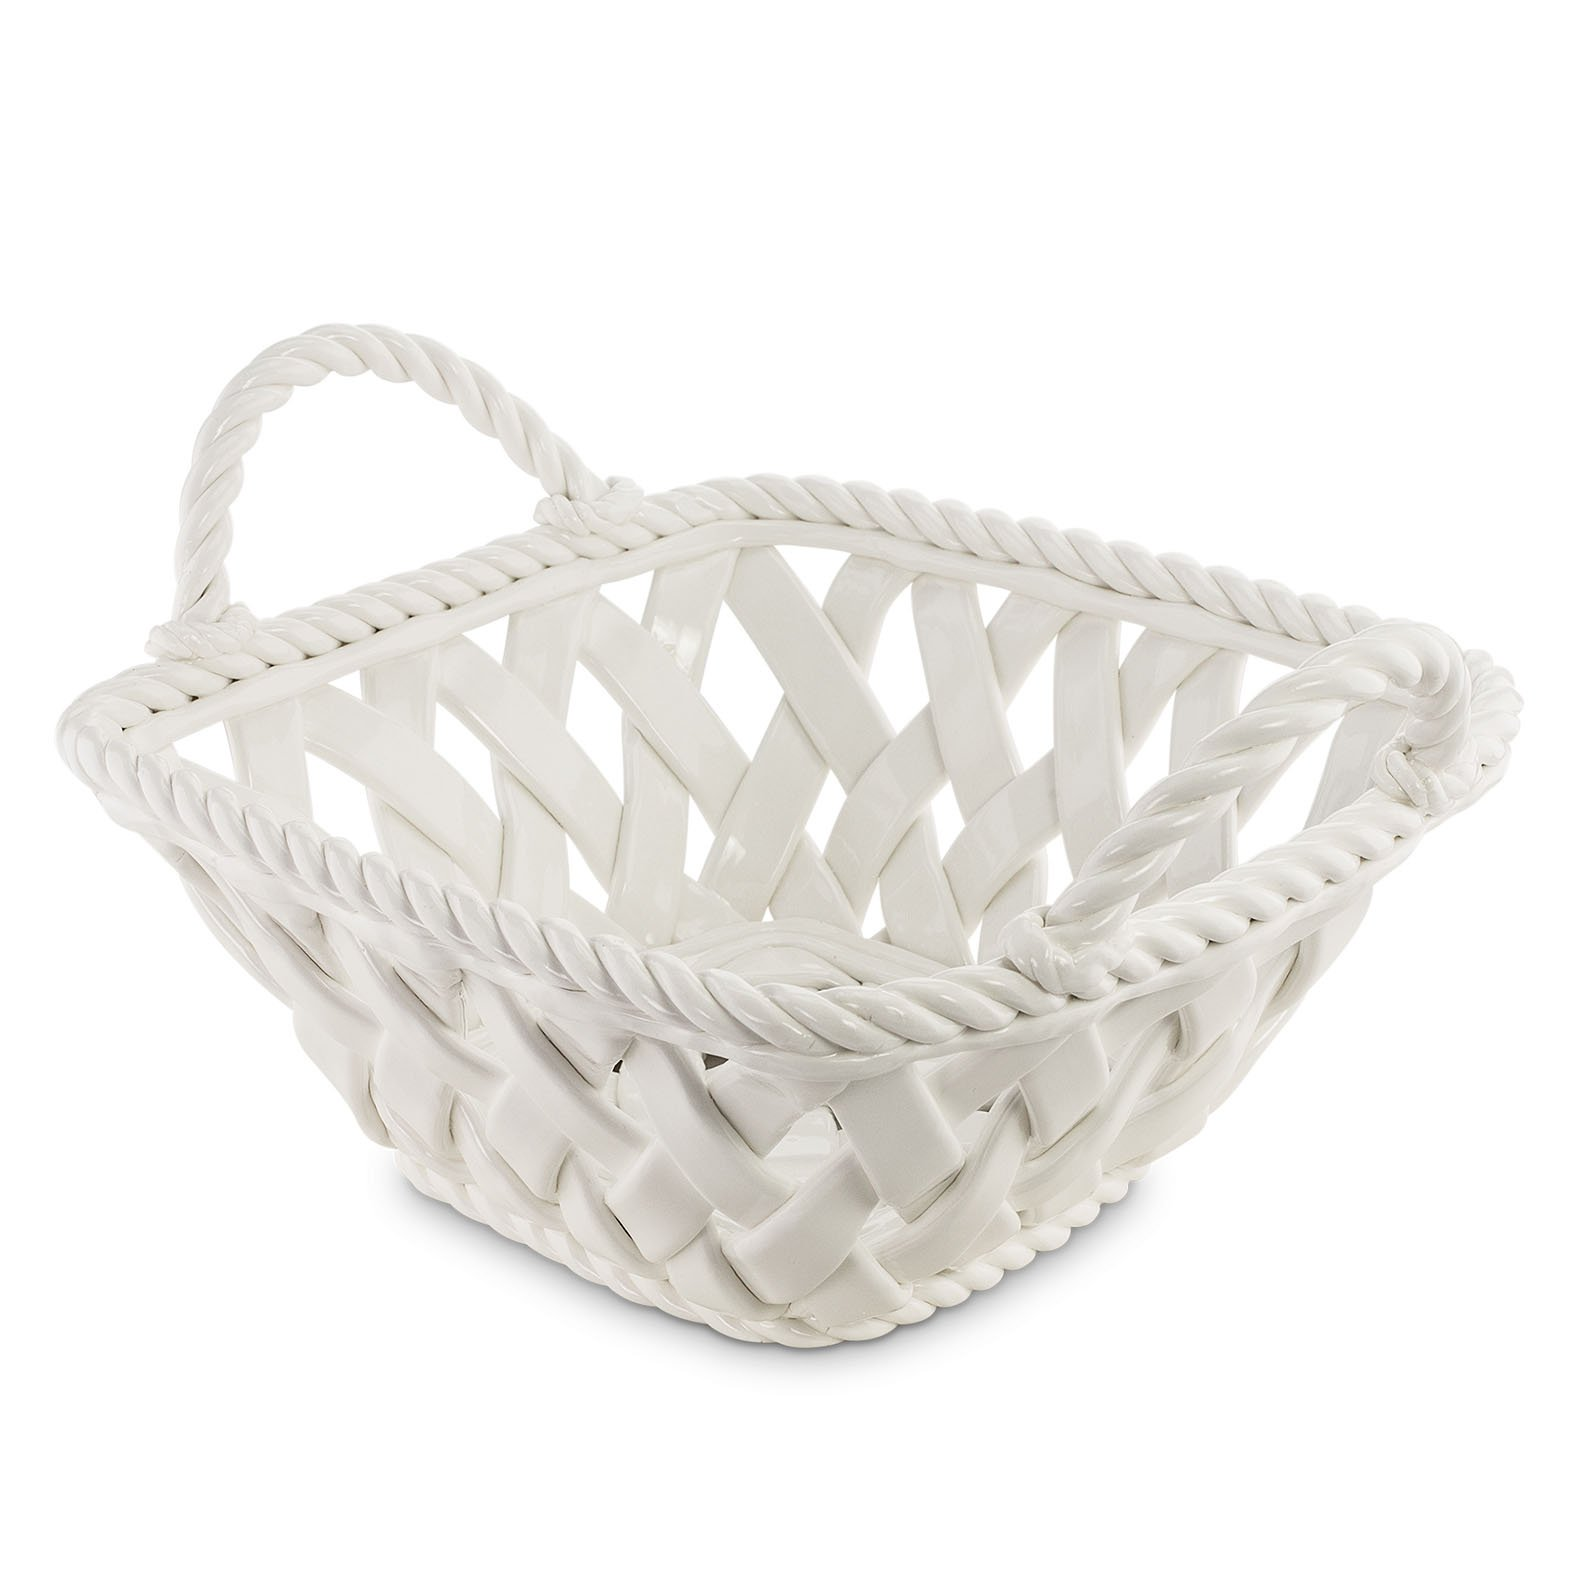 KOVOT Ceramic Woven Serving Basket - Great To Display Bread Or Fruit